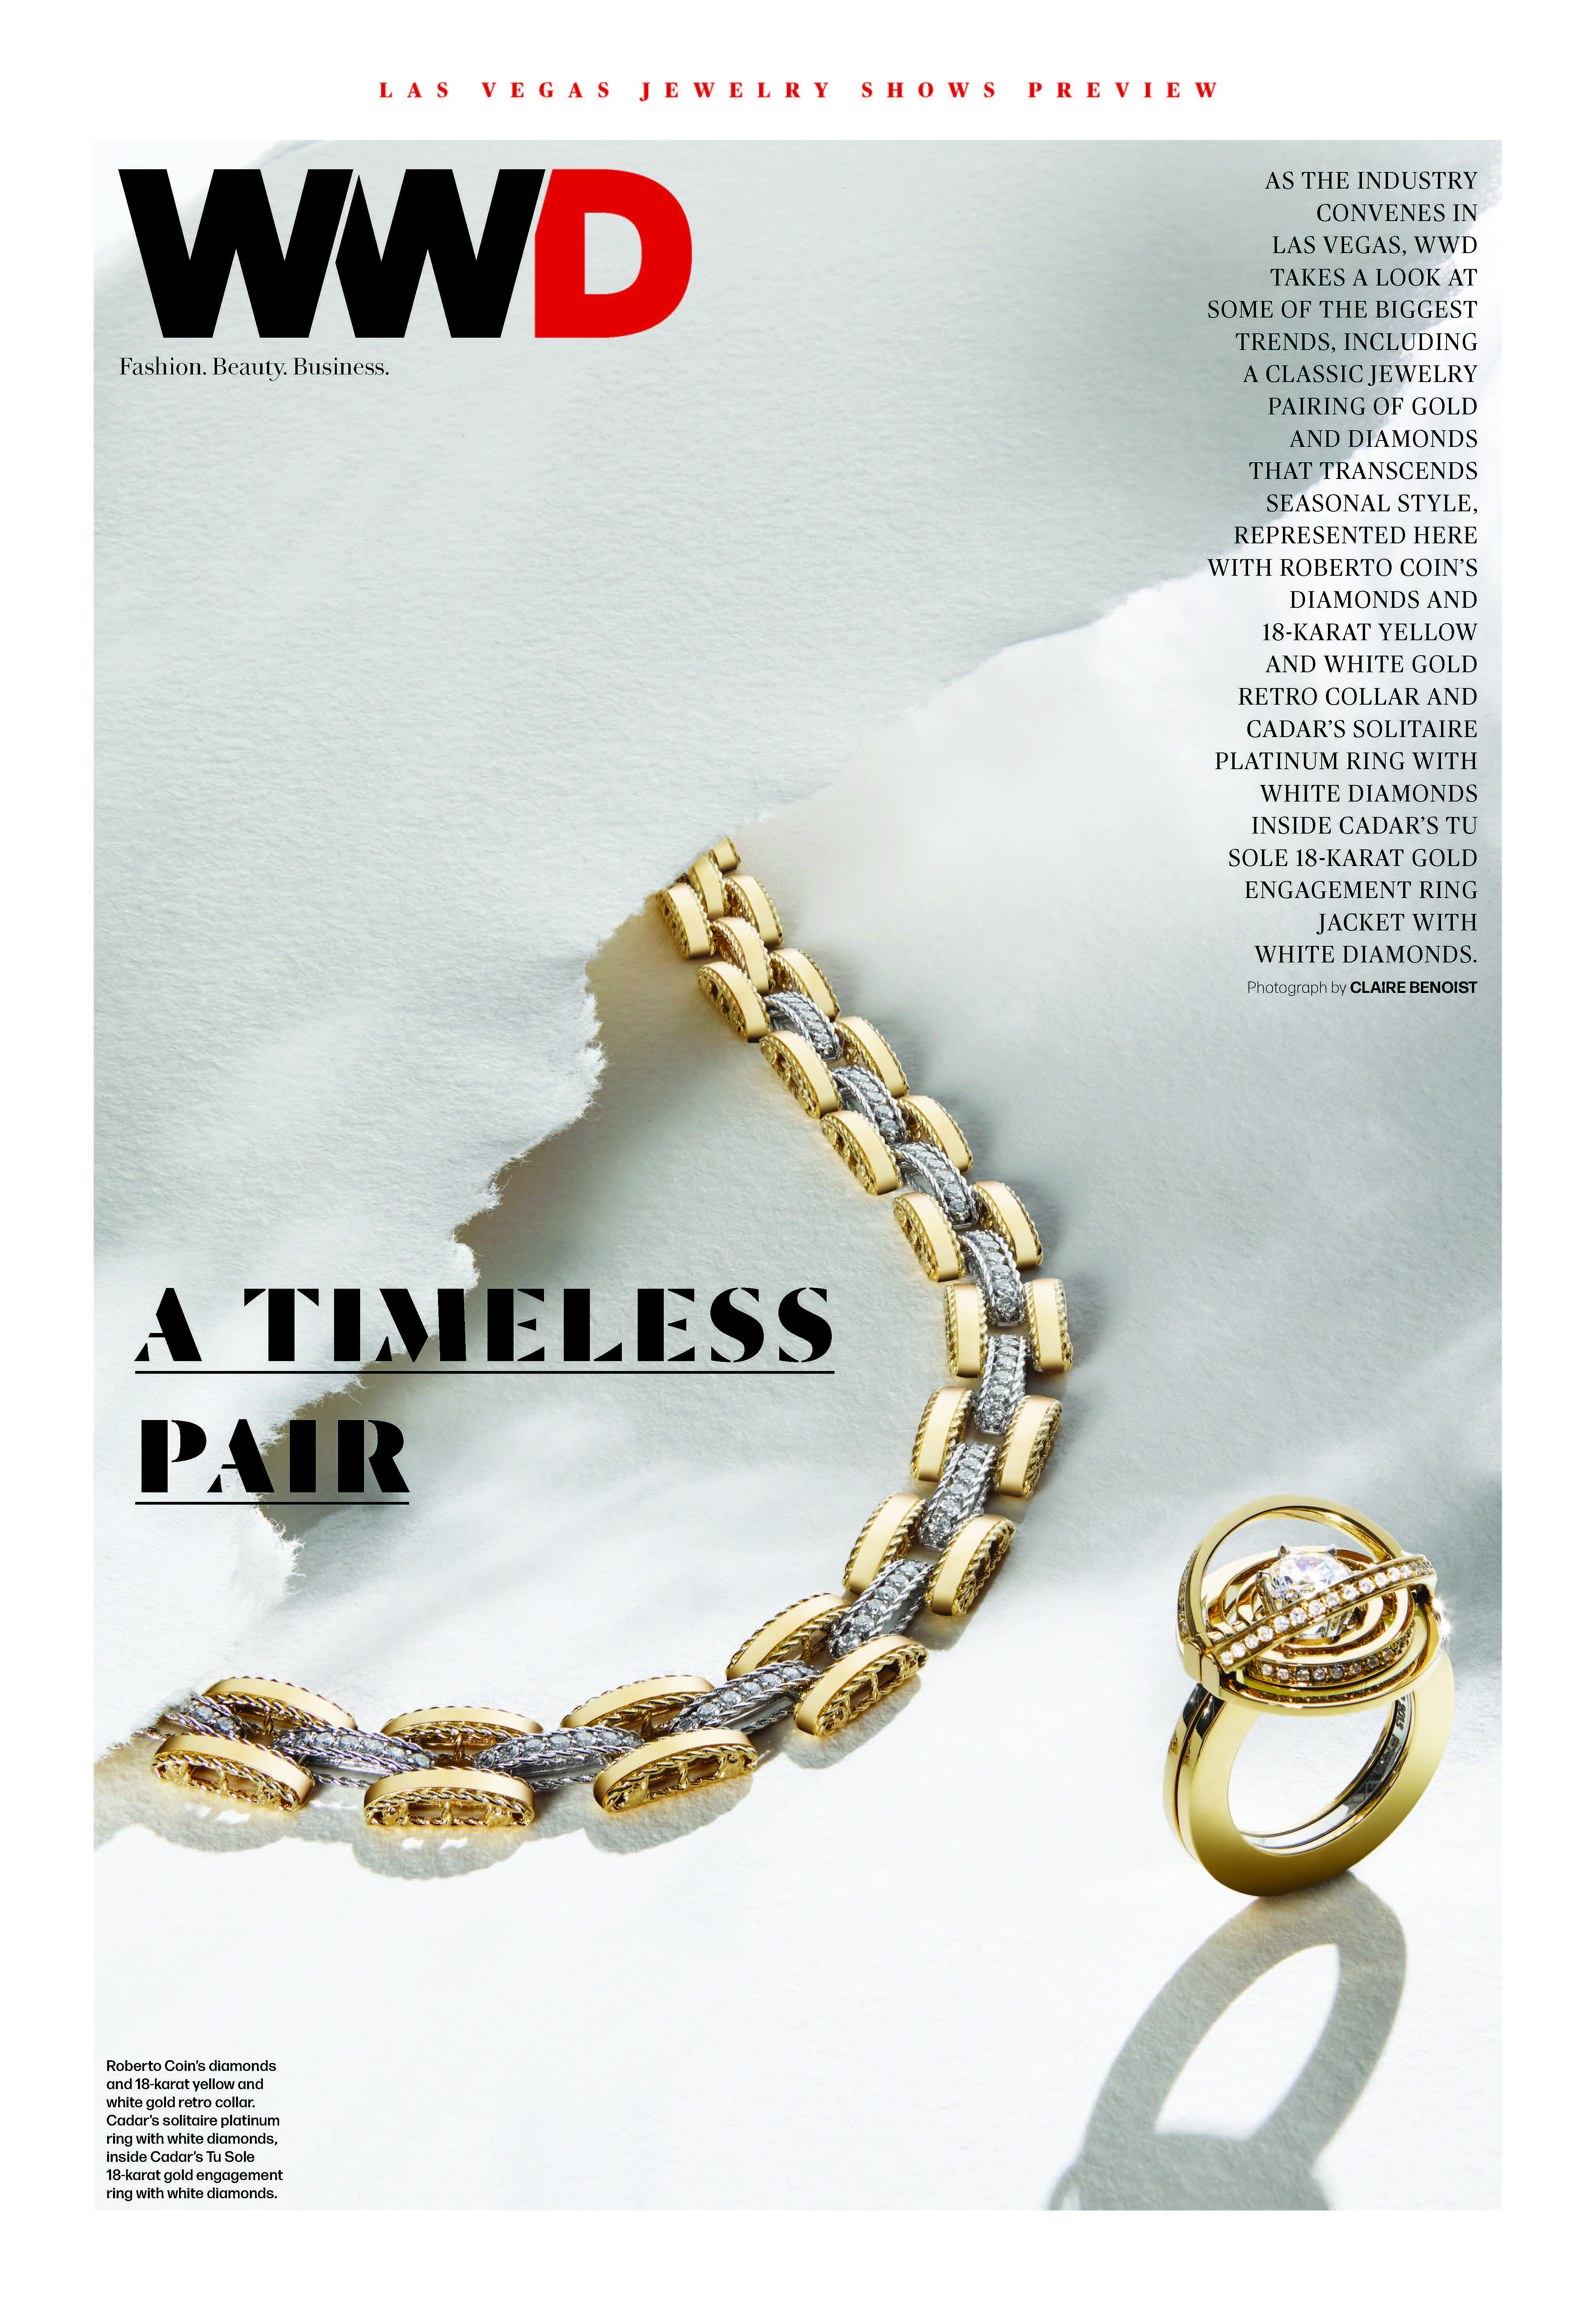 WATCHES AND JEWERLY_WWD_JCK_Cover